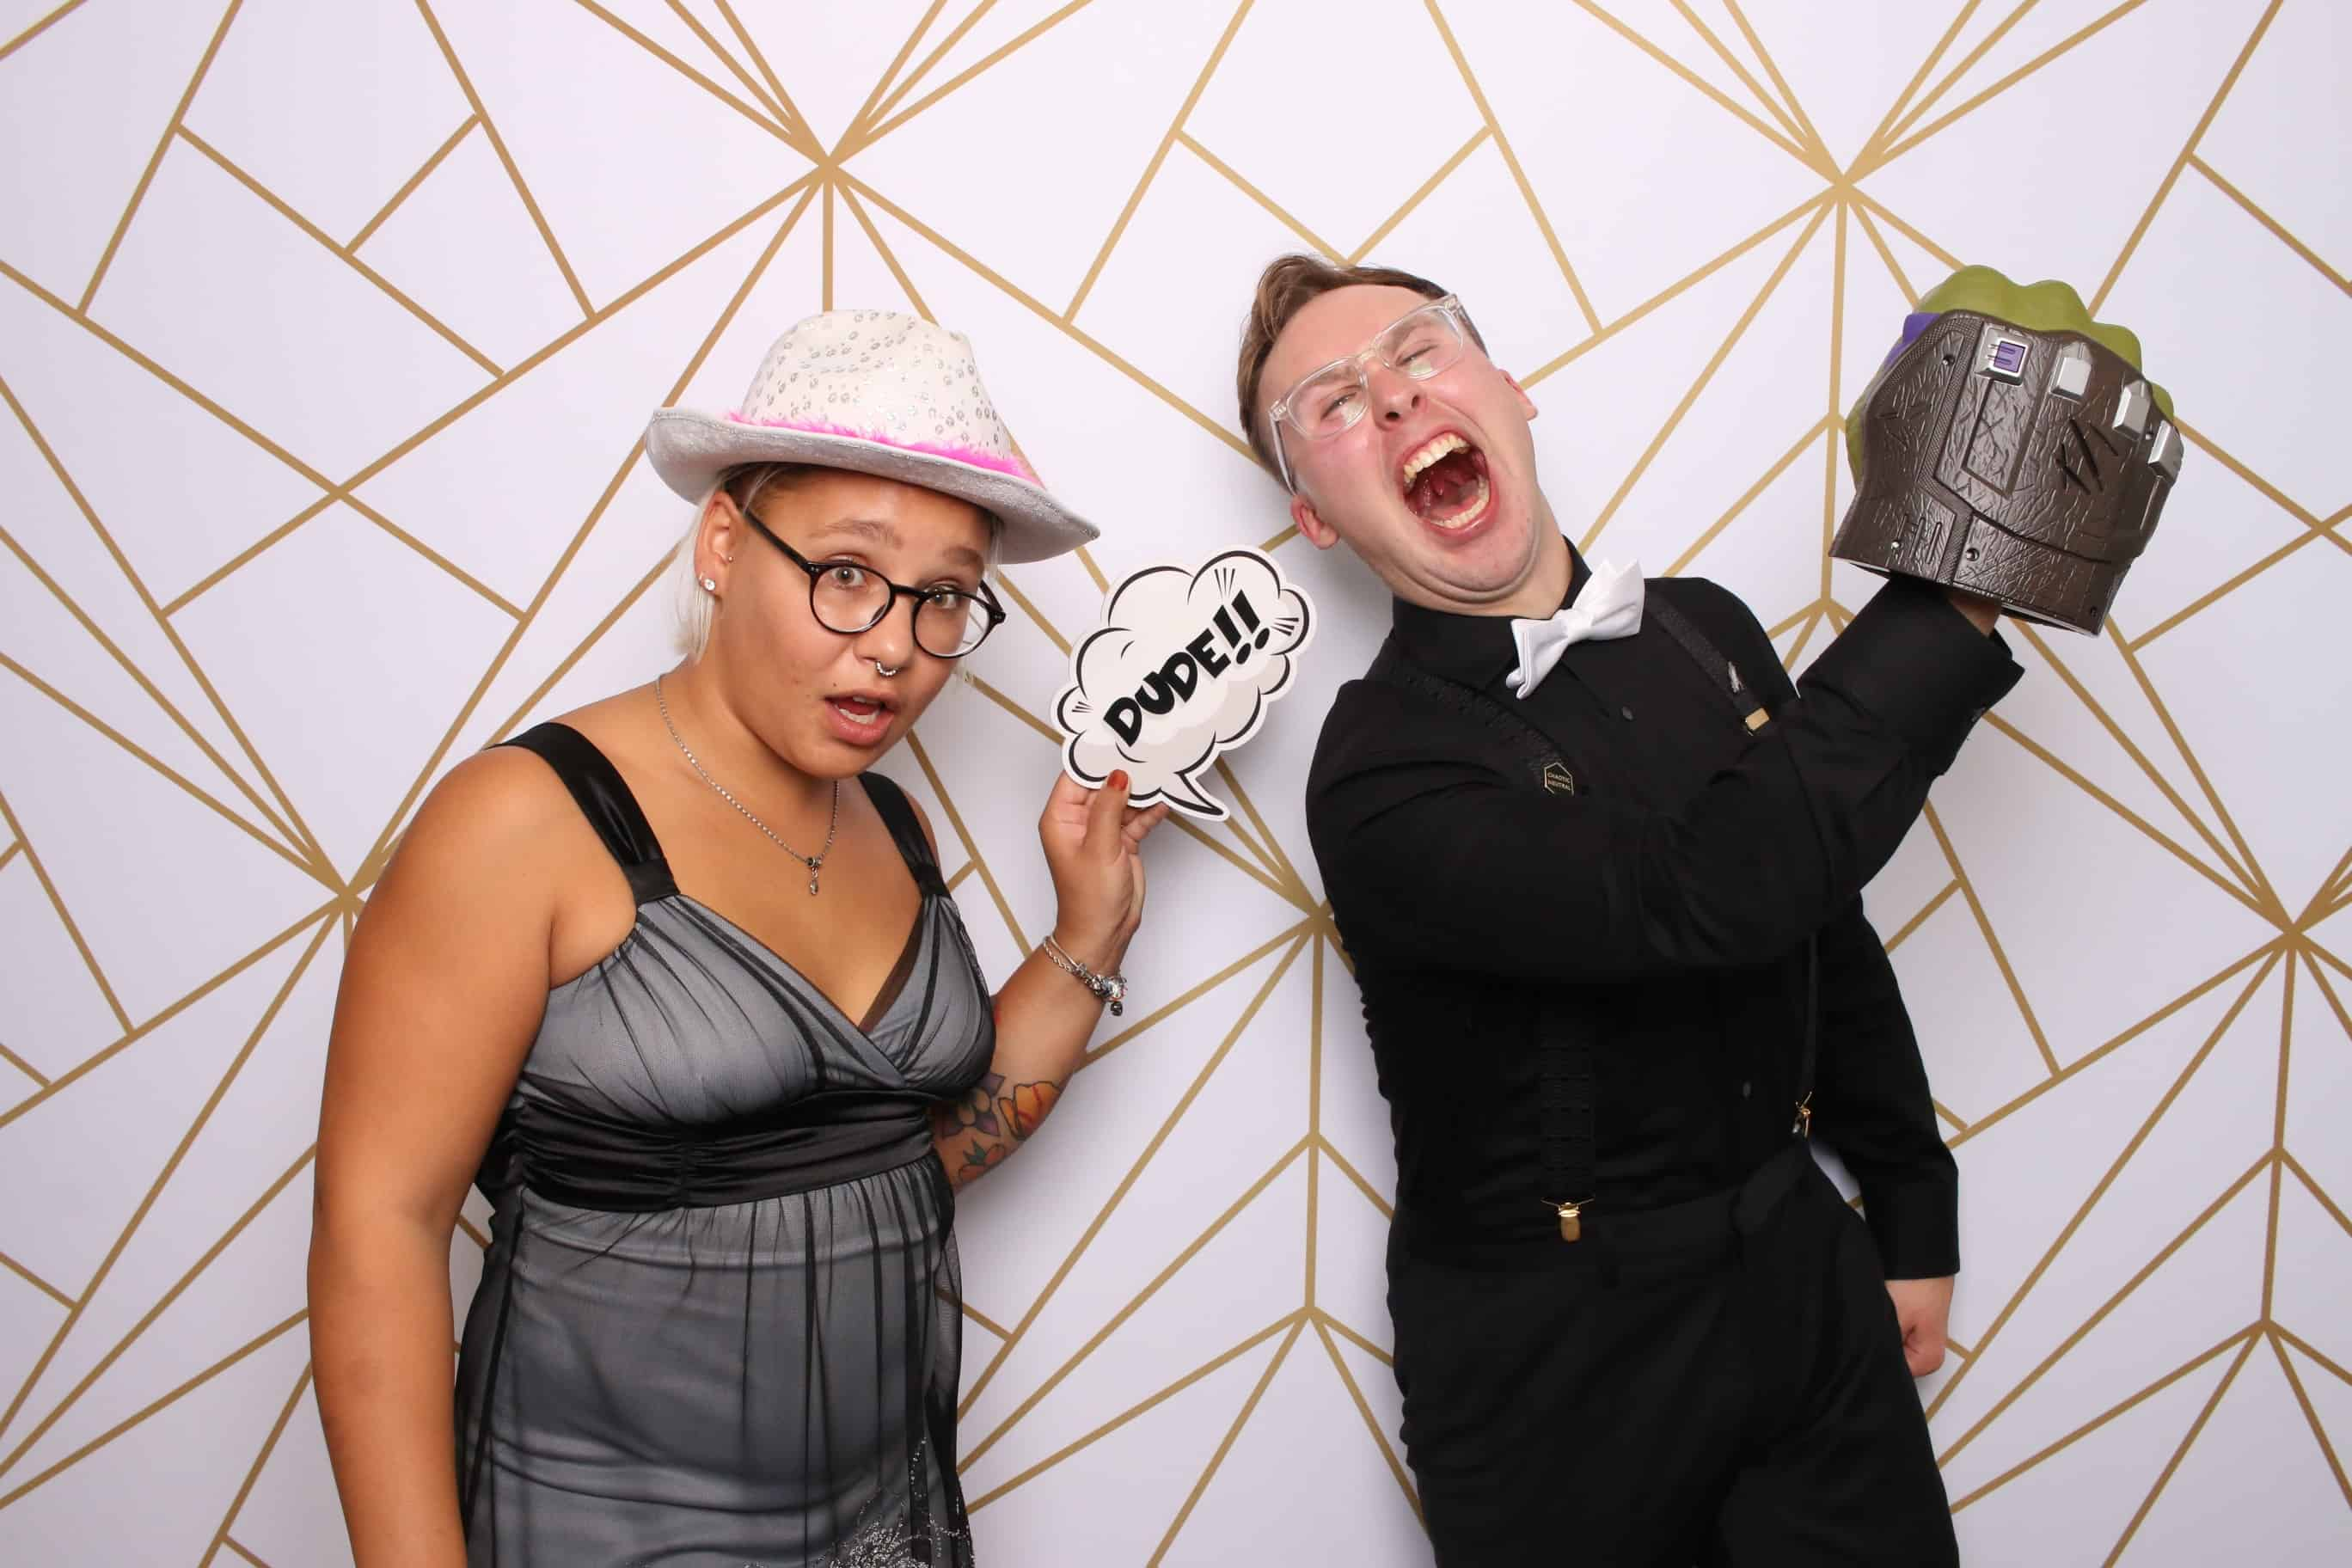 5 Shocking Reasons You Shouldn't Use Groupon for Photo Booths